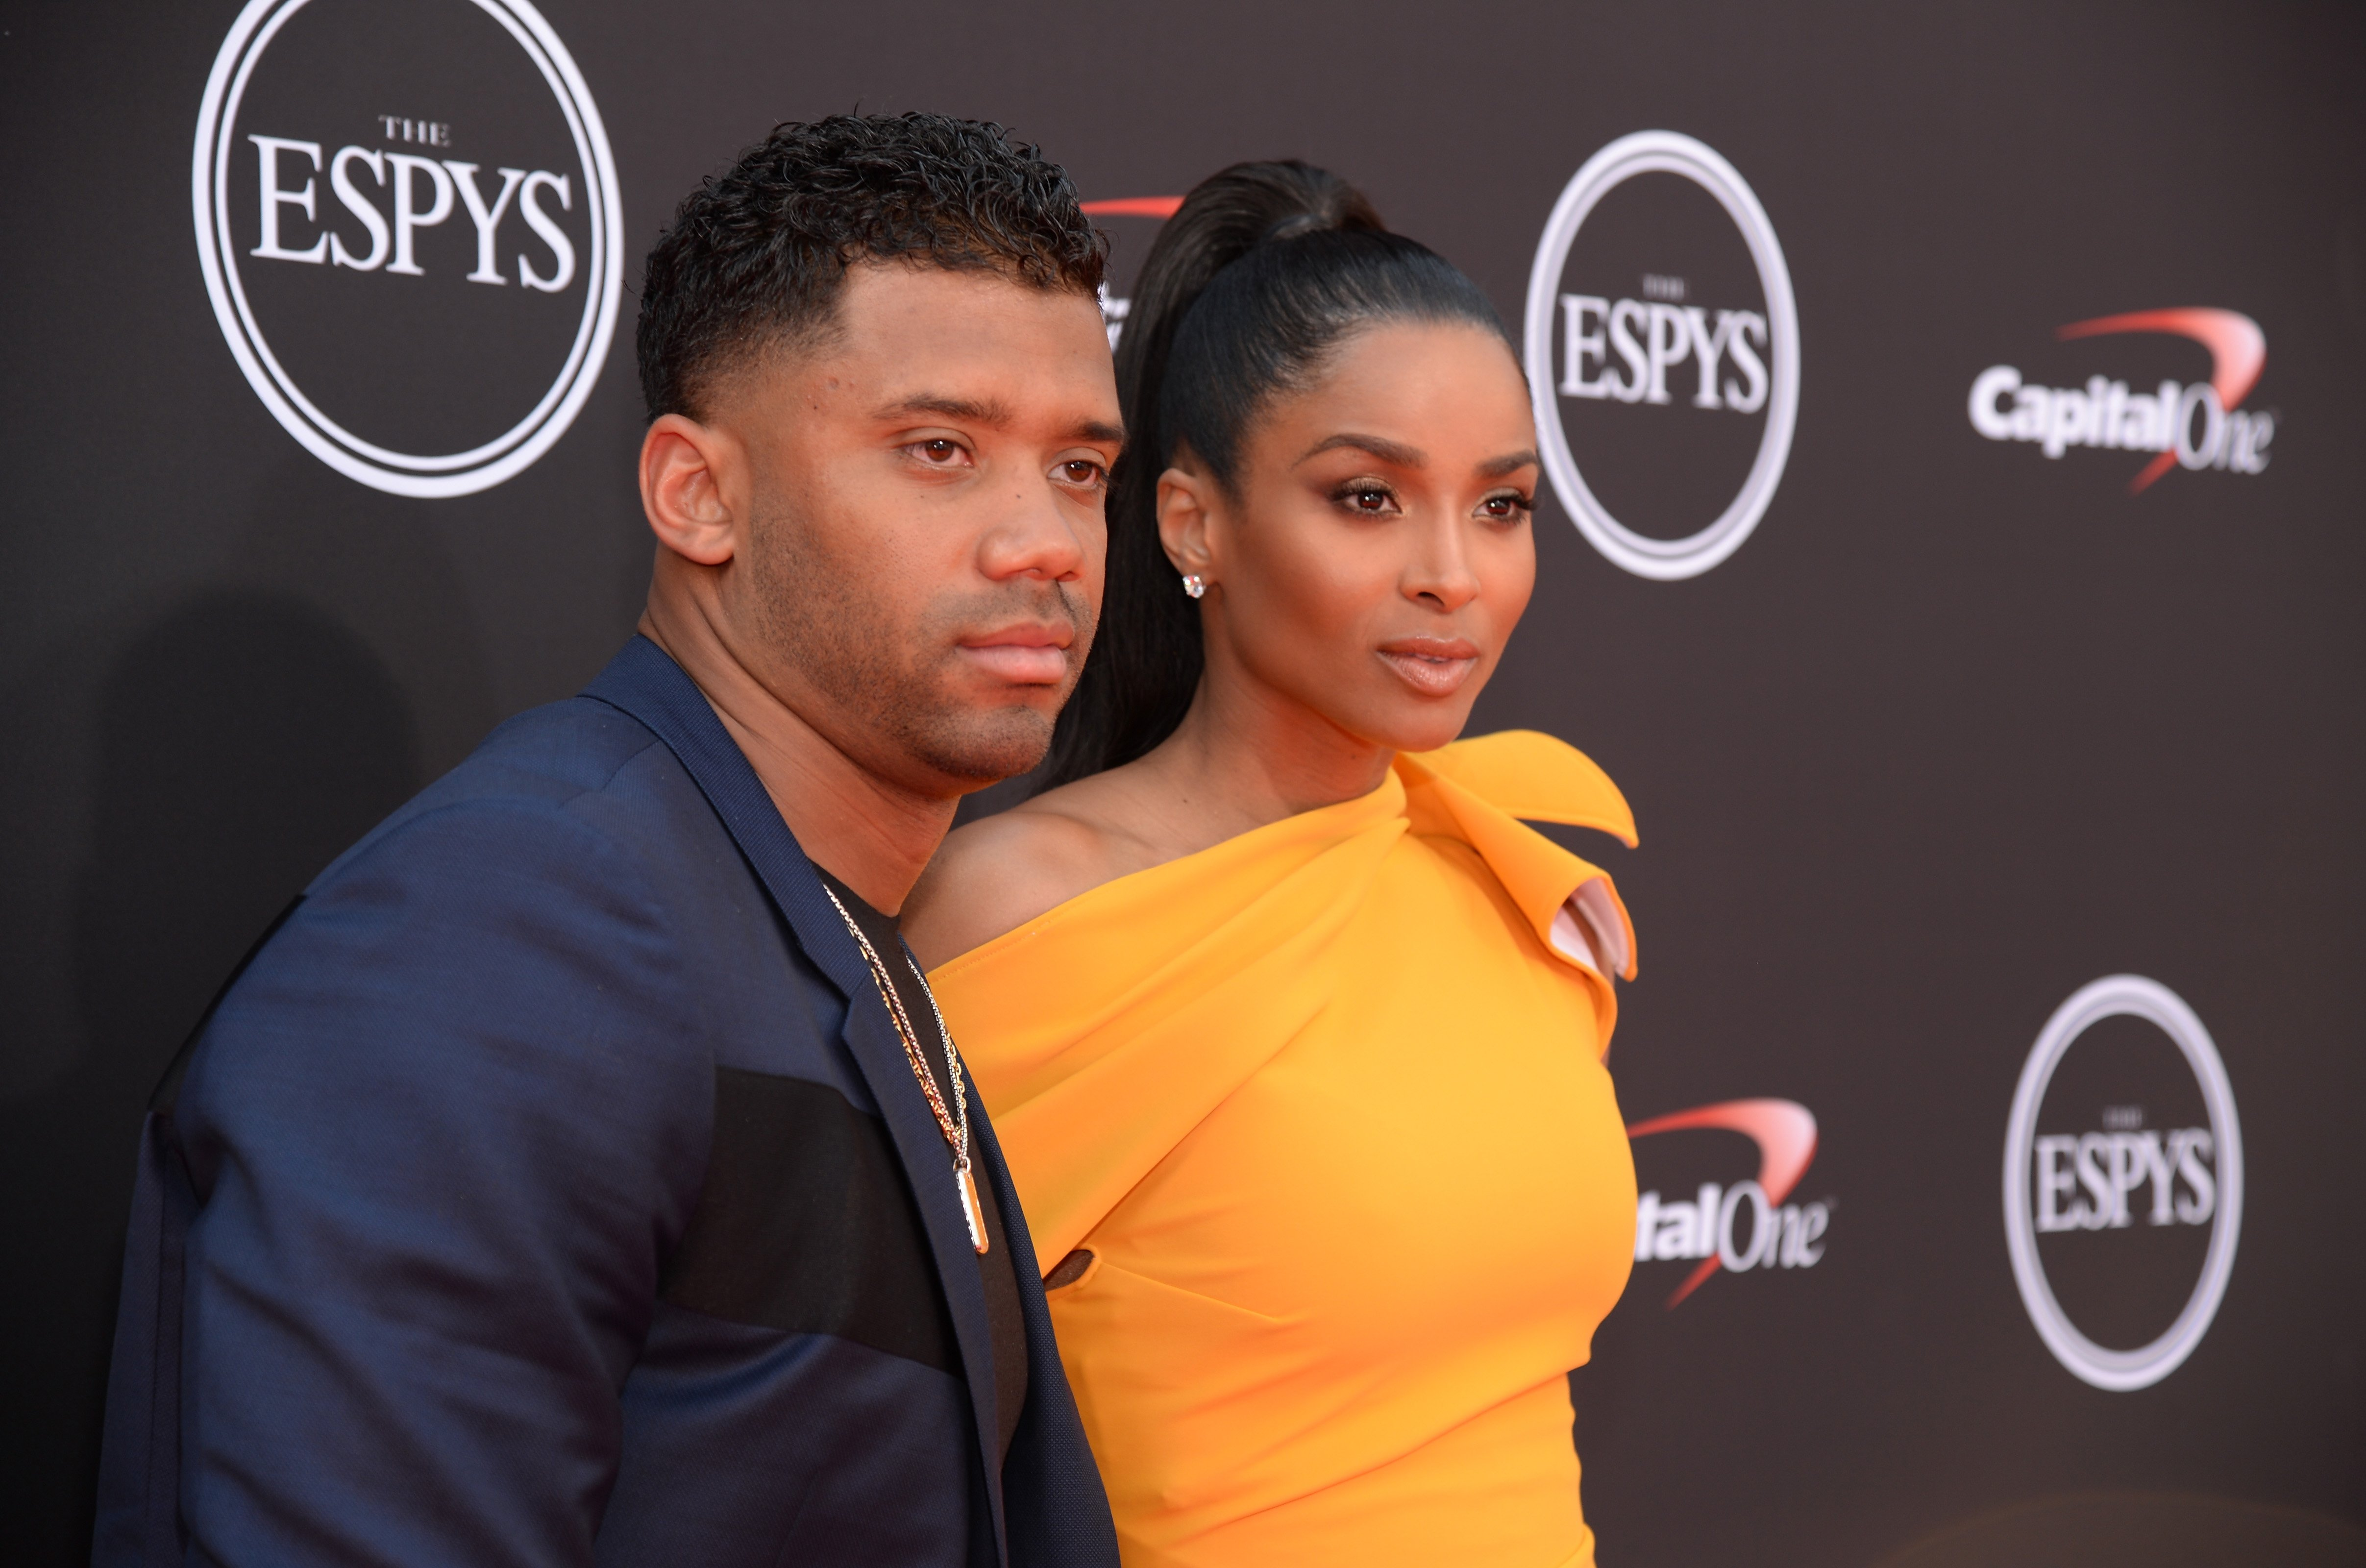 Ciara and Russell Wilson at the ESPY Awards Red Carpet Show at Microsoft Theater in Los Angeles, California on July 18, 2018. | Photo: Getty Images